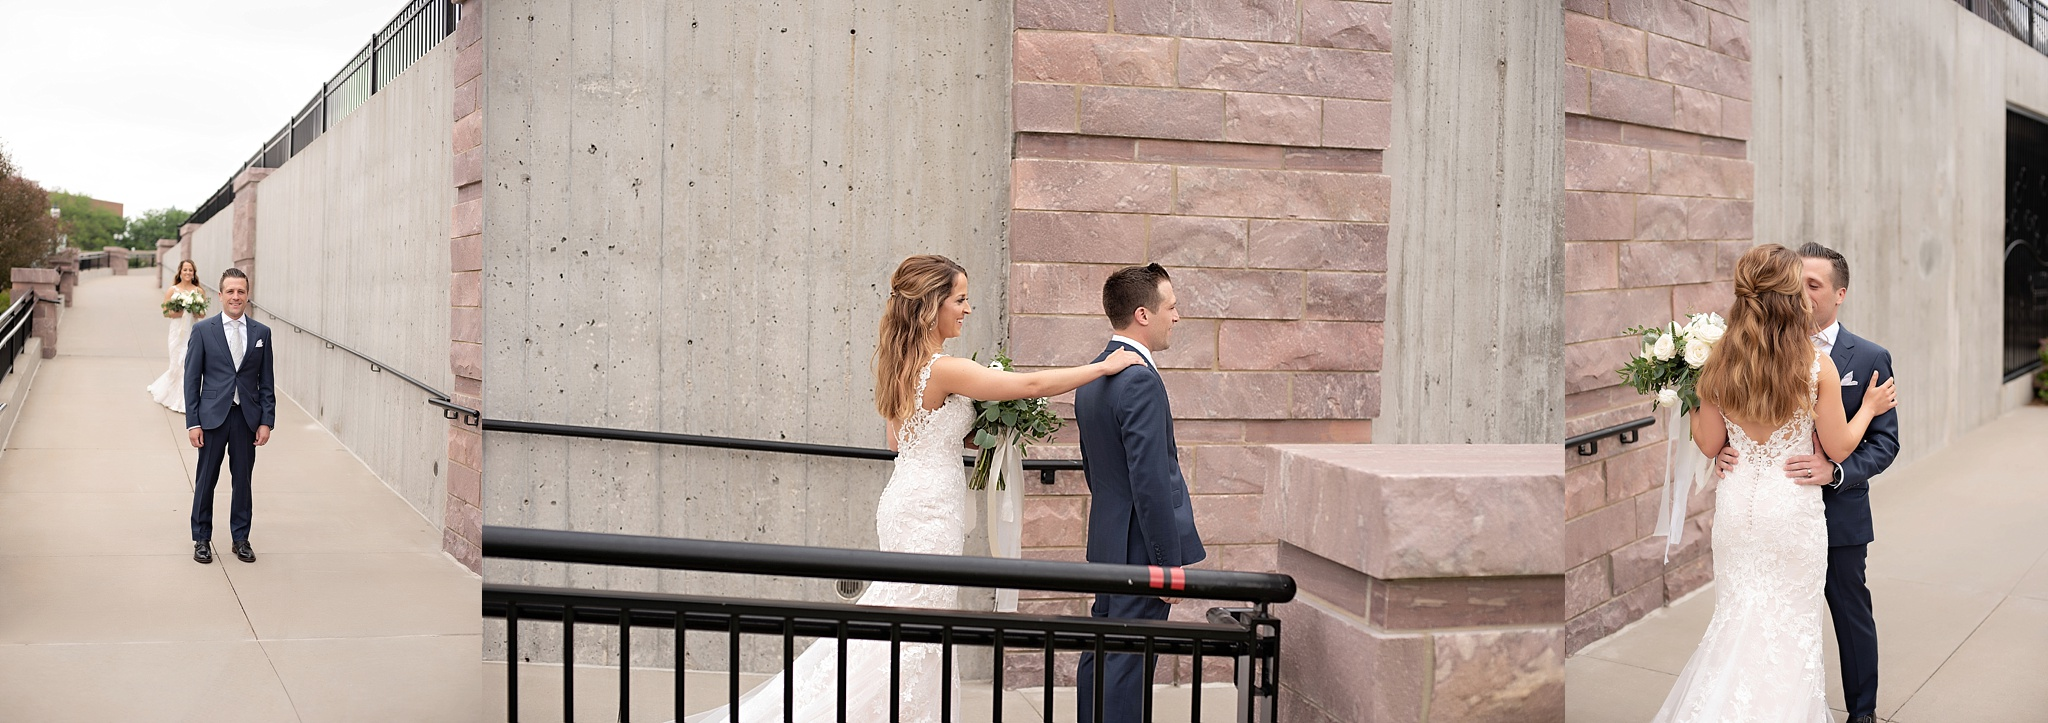 bride and groom share intimate first look downtown sioux falls